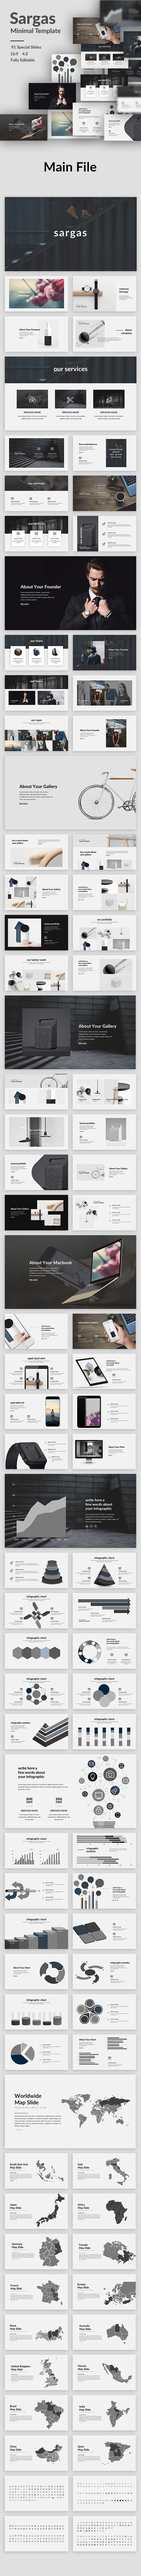 Sargas - Minimal Google Slide Template - Google Slides Presentation Templates